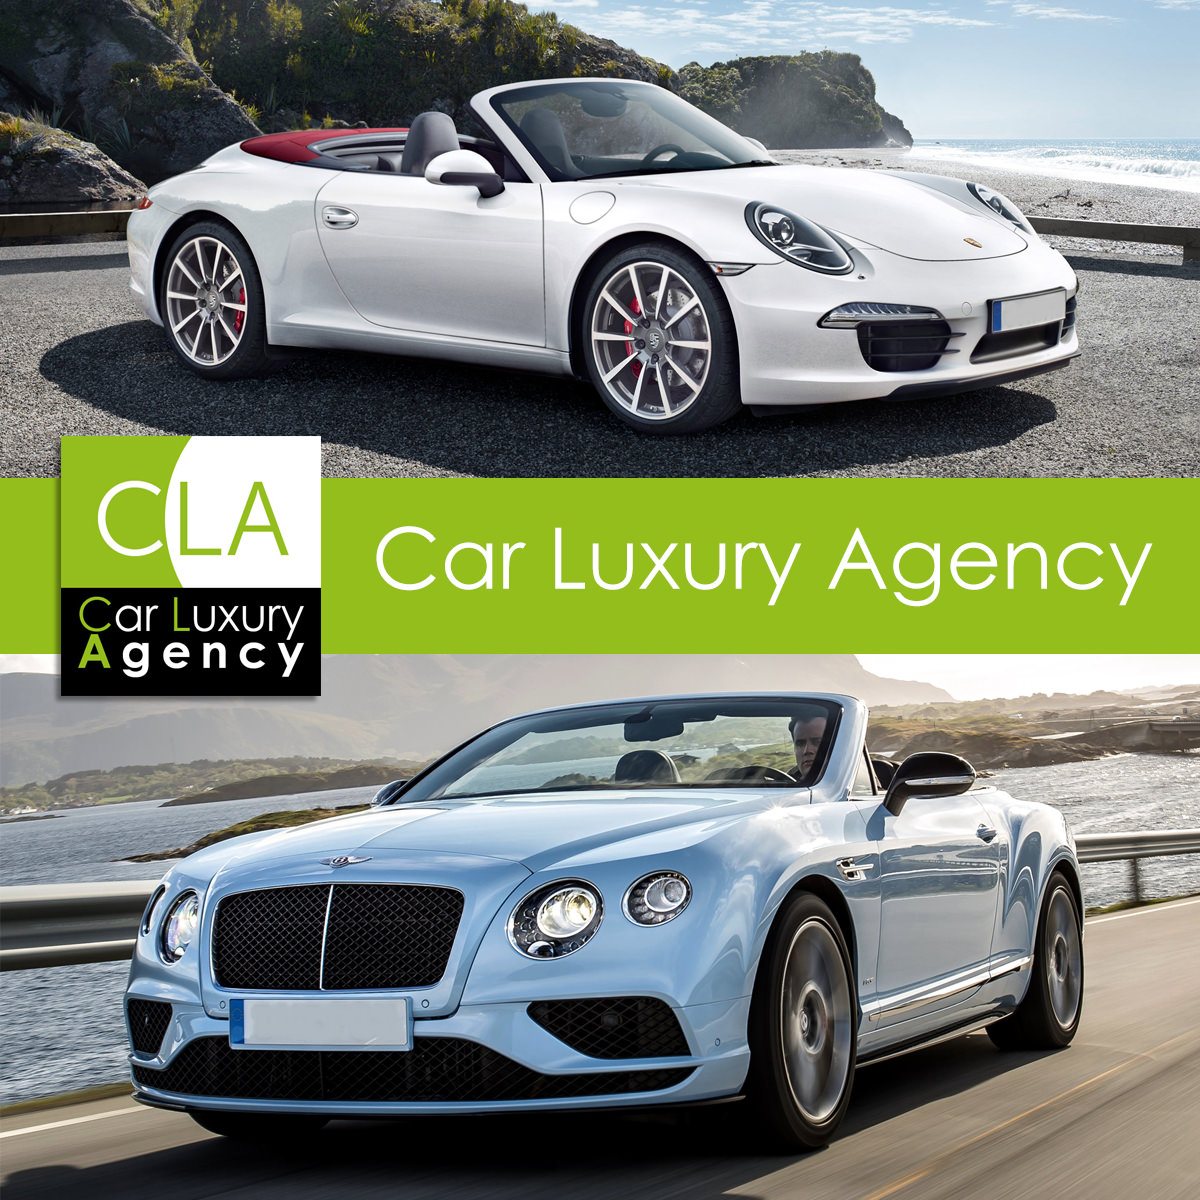 Car Luxury Agency Feedbacks Reviews